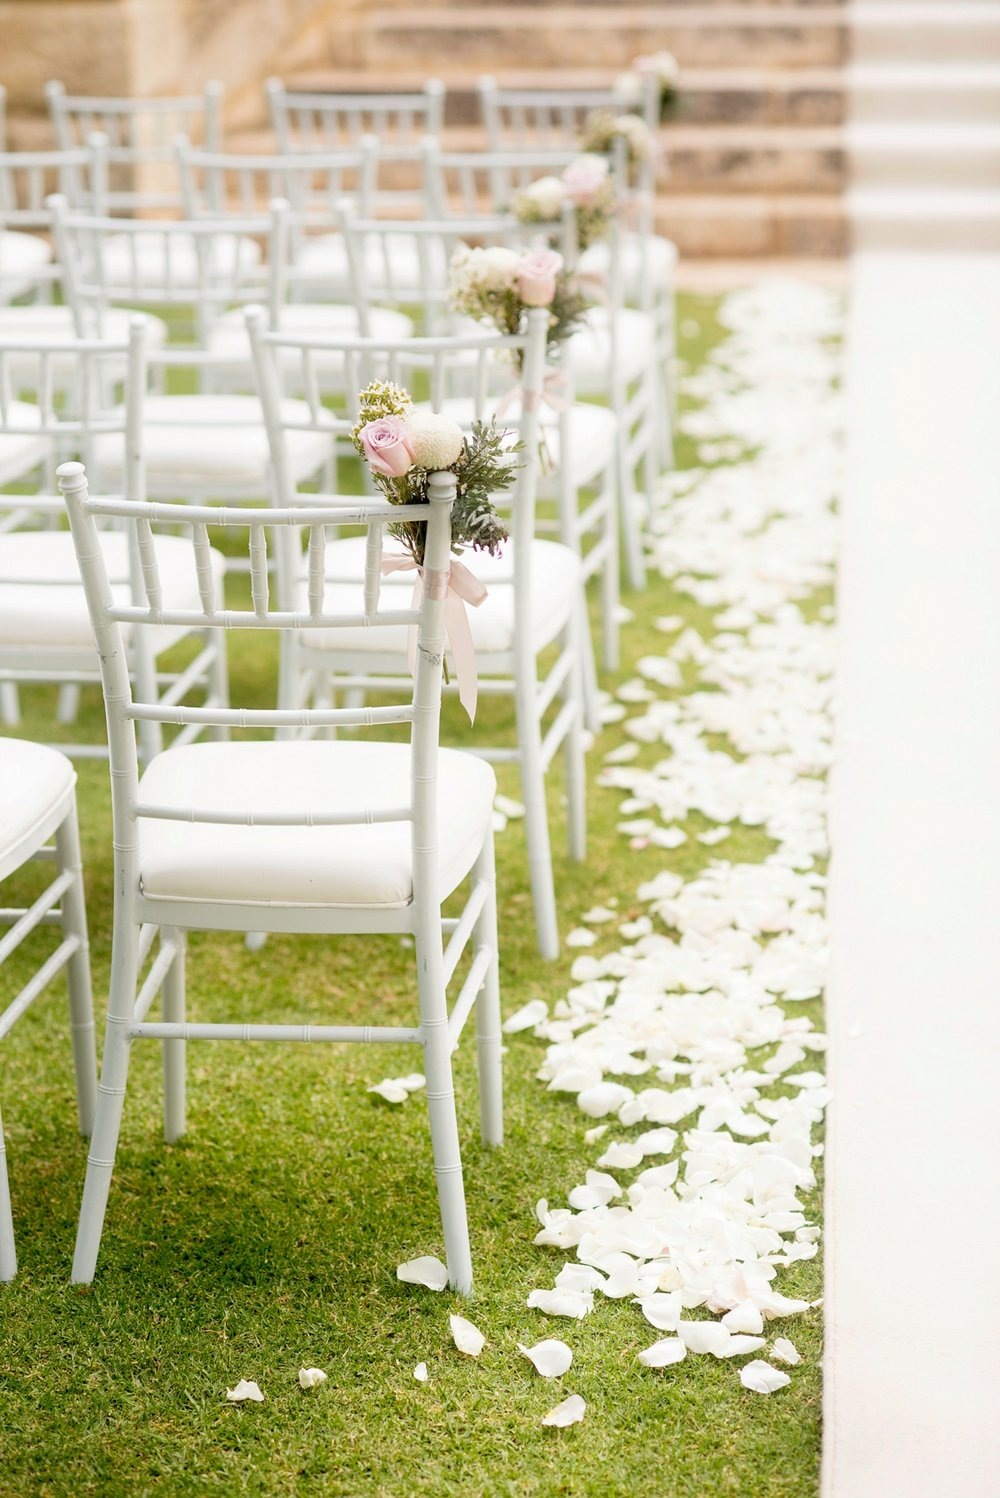 14_matthew landers caversham house wedding perth.jpg